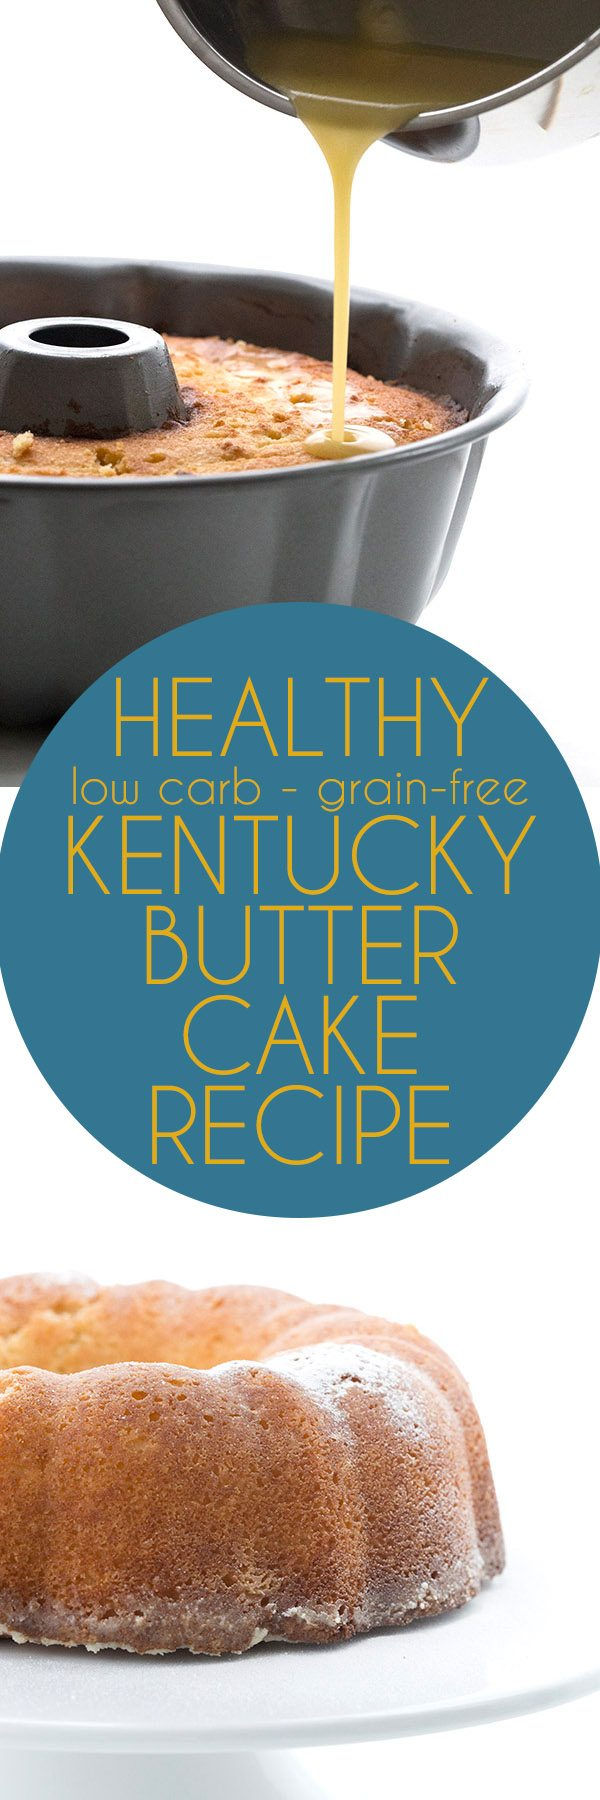 titled photo collage (and shown): Healthy Low Carb Grain Free Kentucky Butter Cake Recipe